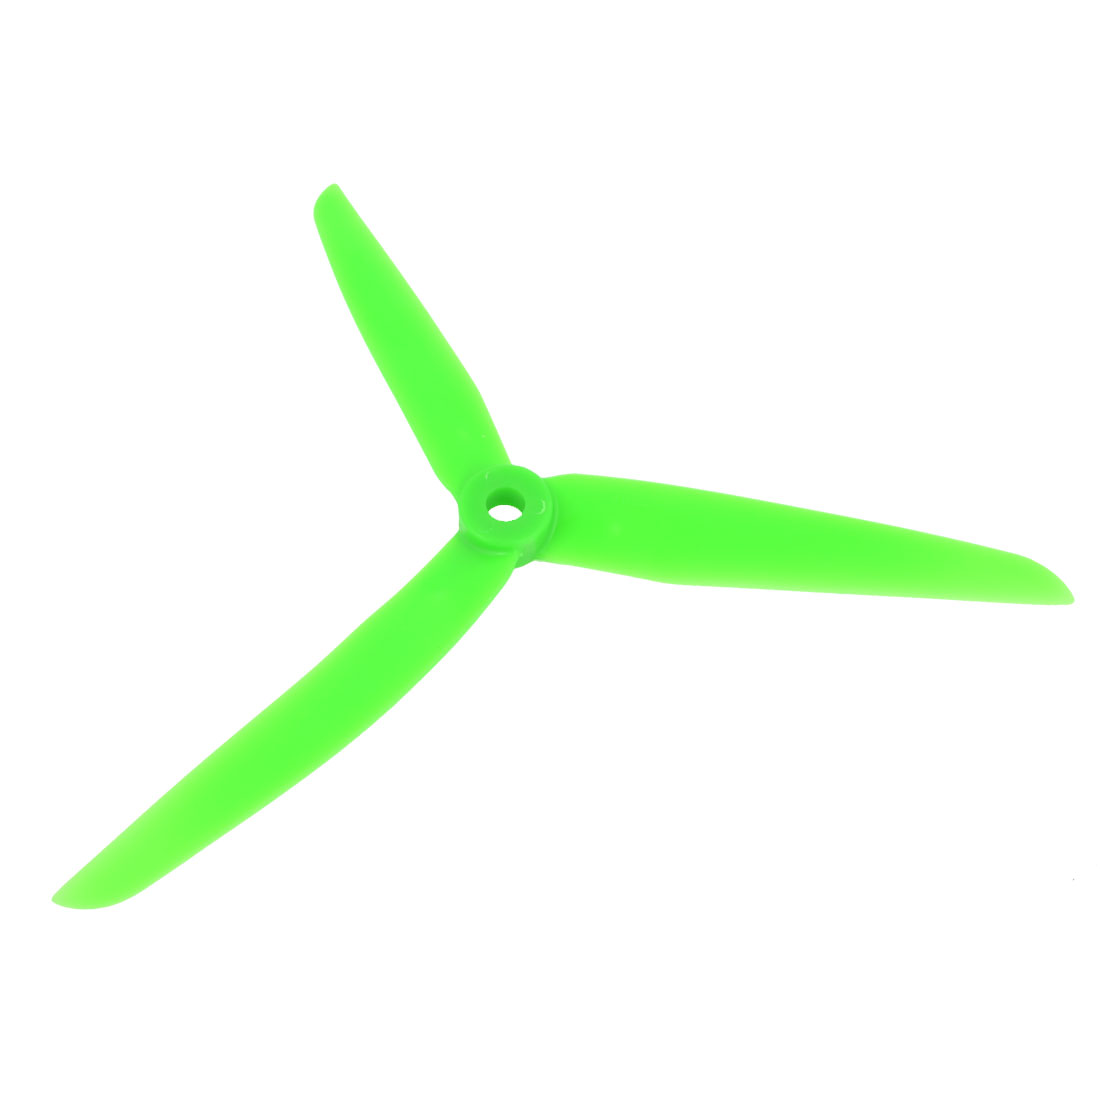 Green Plastic 3 Vanes Gas Engine Propeller Prop 7x3.5 for RC Airplane Aircraft